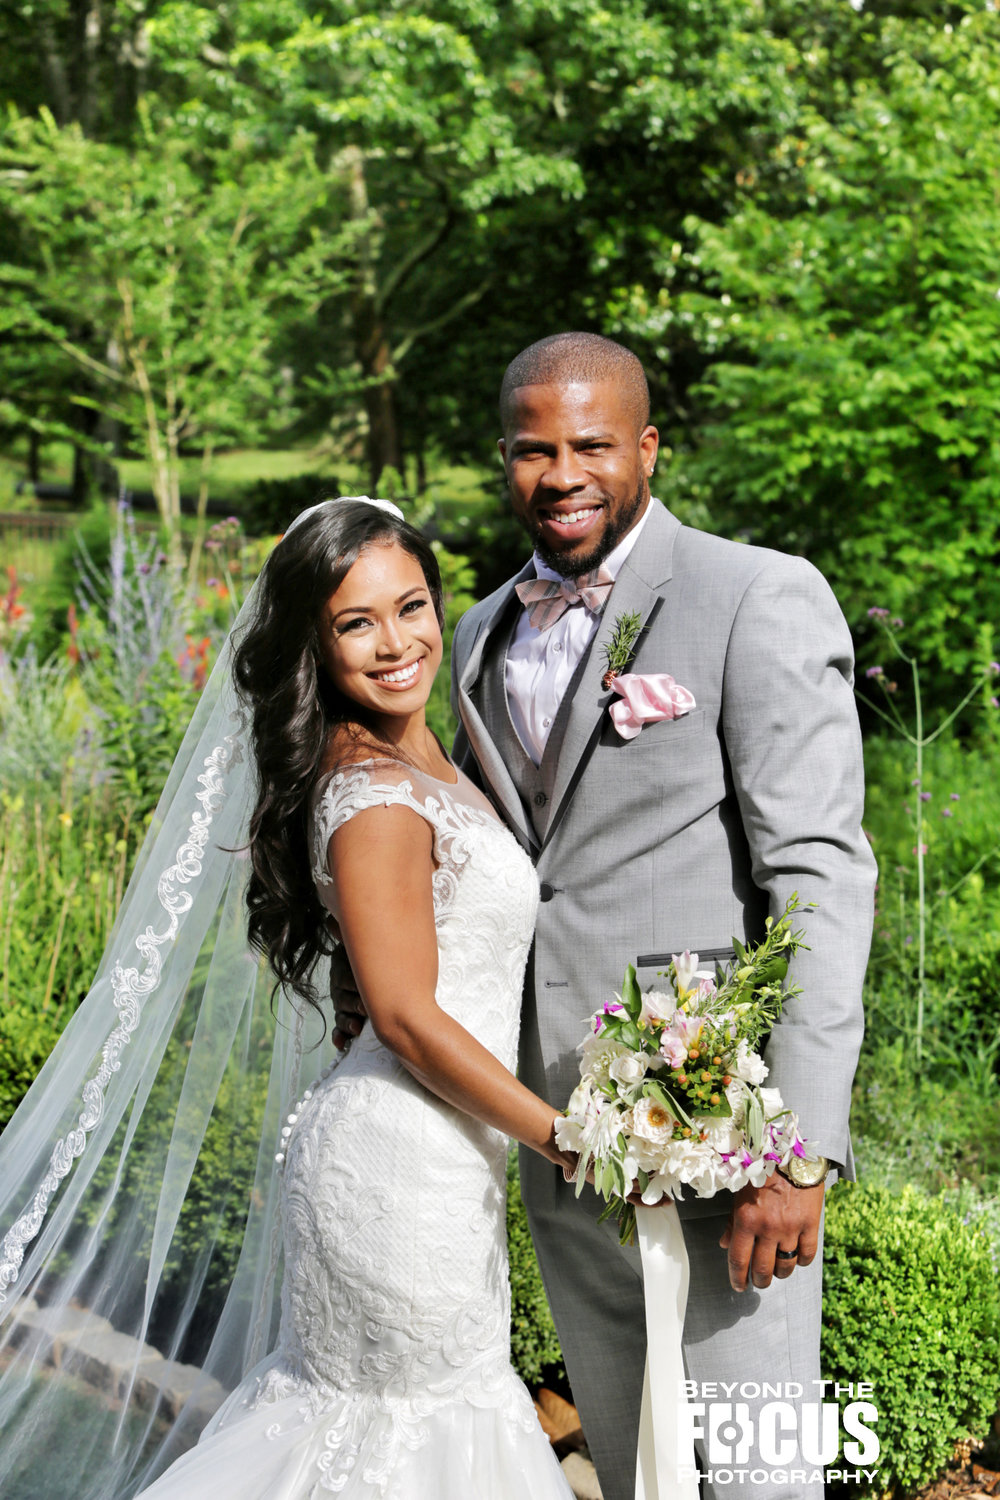 Christan_Imani_WeddingPartyFamily_W_22.jpg